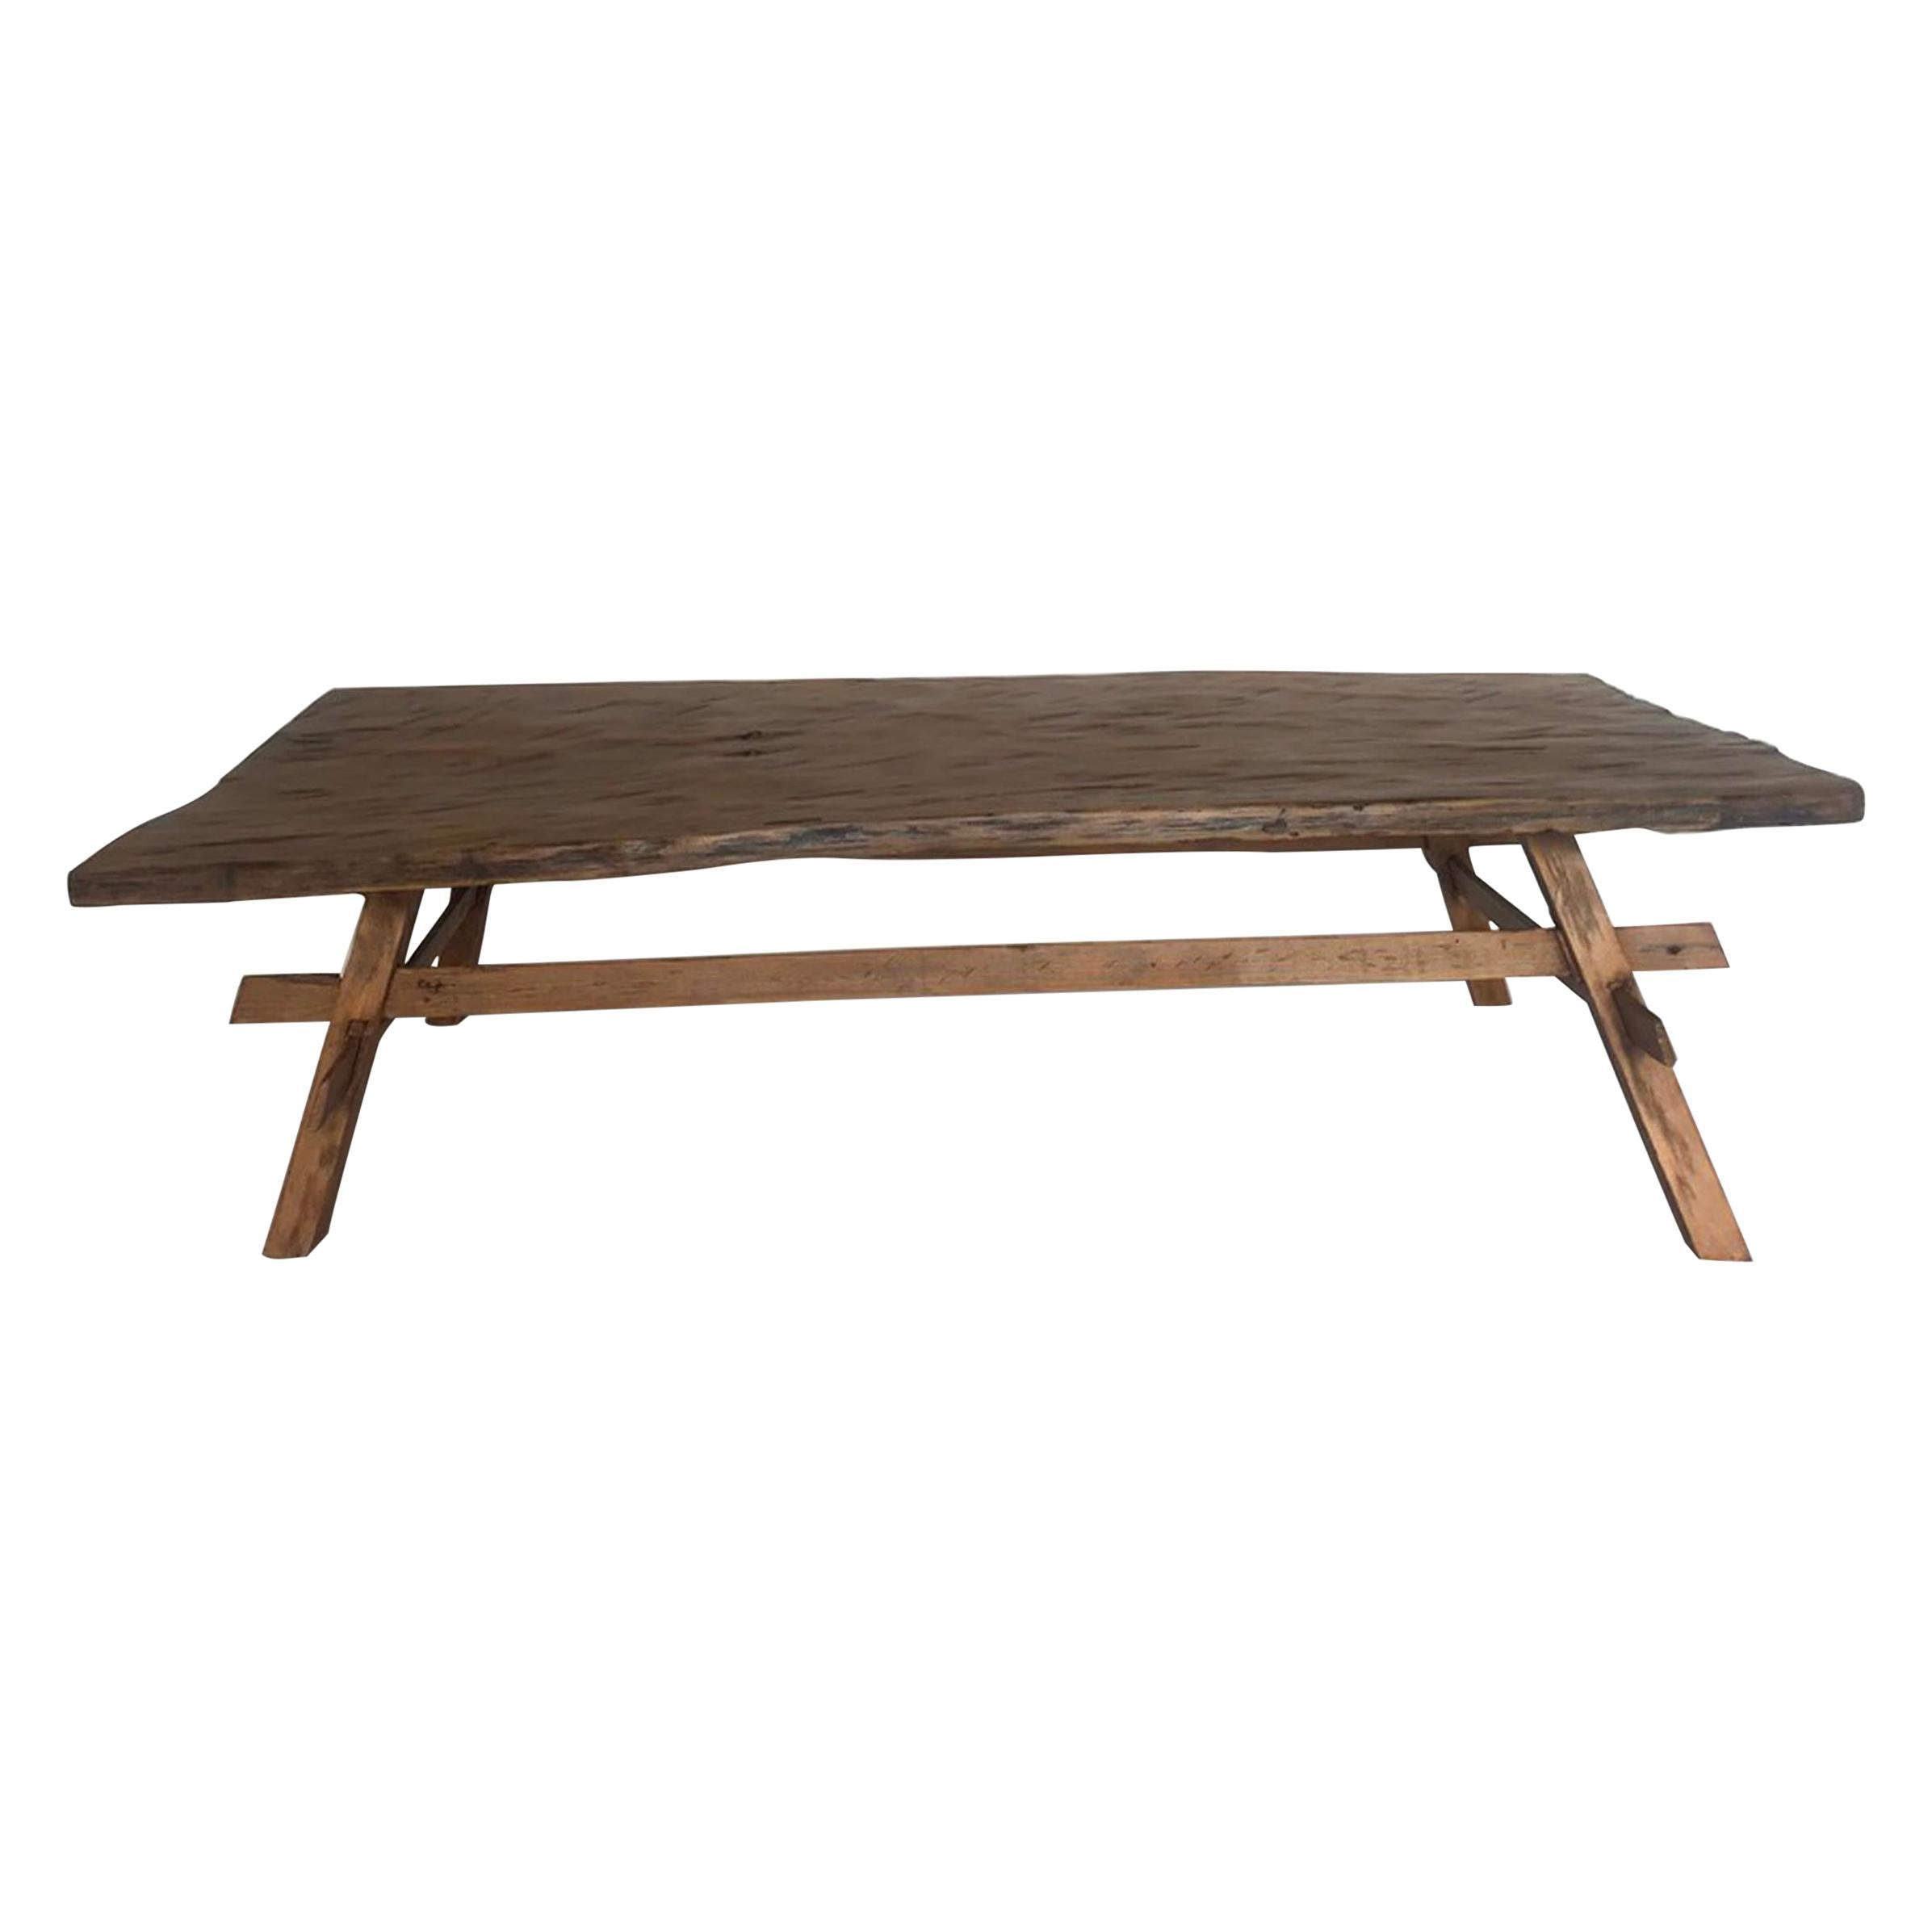 One Wide Board Rustic Coffee Table